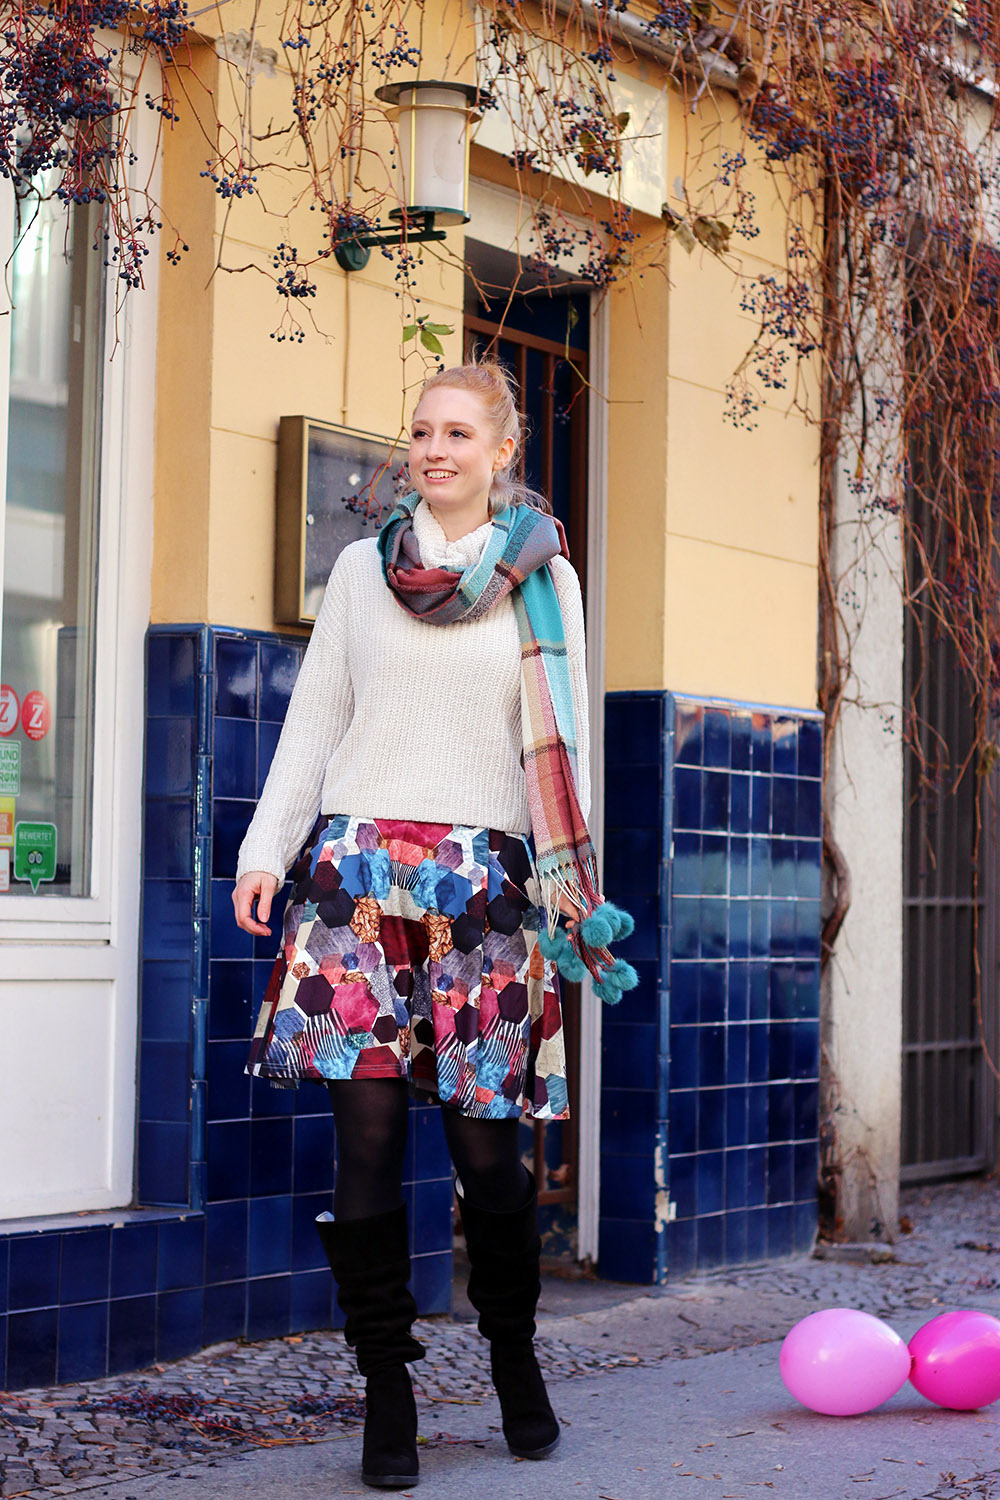 bunt, Muster-Mix, Winter Outfit, Mode, Winter Mode, Winter Look, Mode Blog, Modeblog, Berlin, Influencer, Finde deinen Stil, Advance Your Style, Modetipps